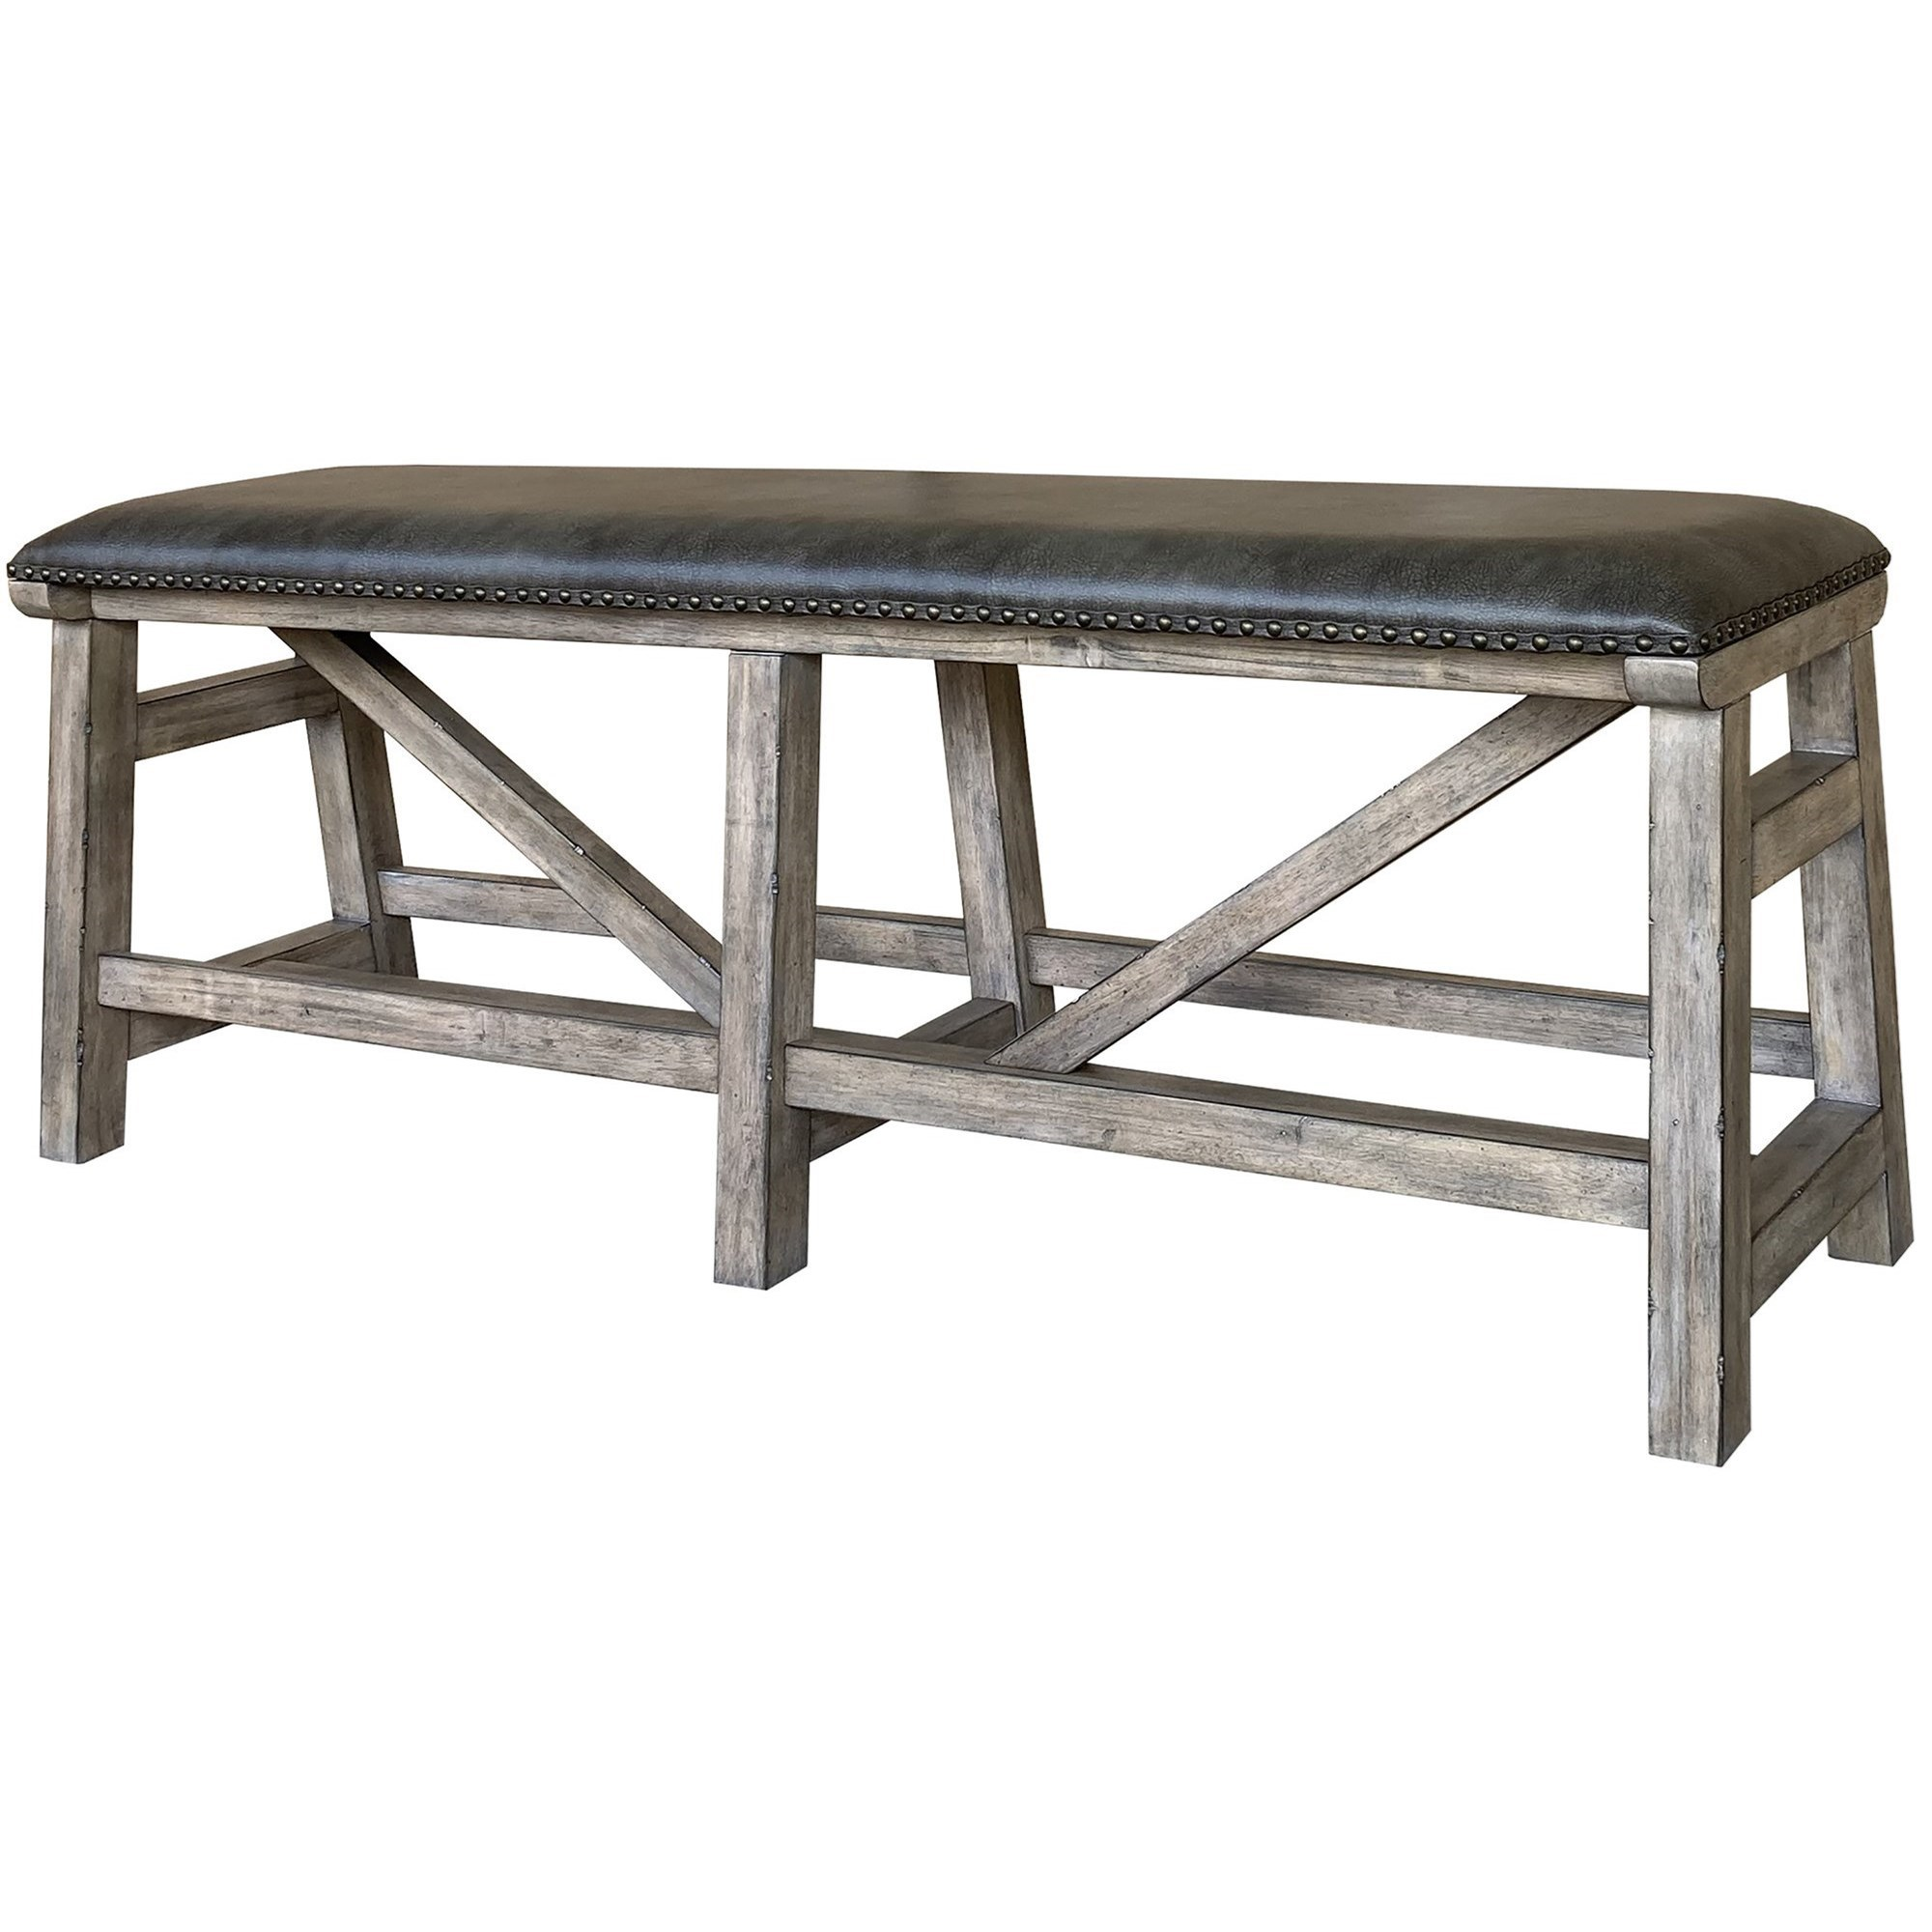 Lodge Rustic Upholstered Counter Bench by Parker House at Bullard Furniture